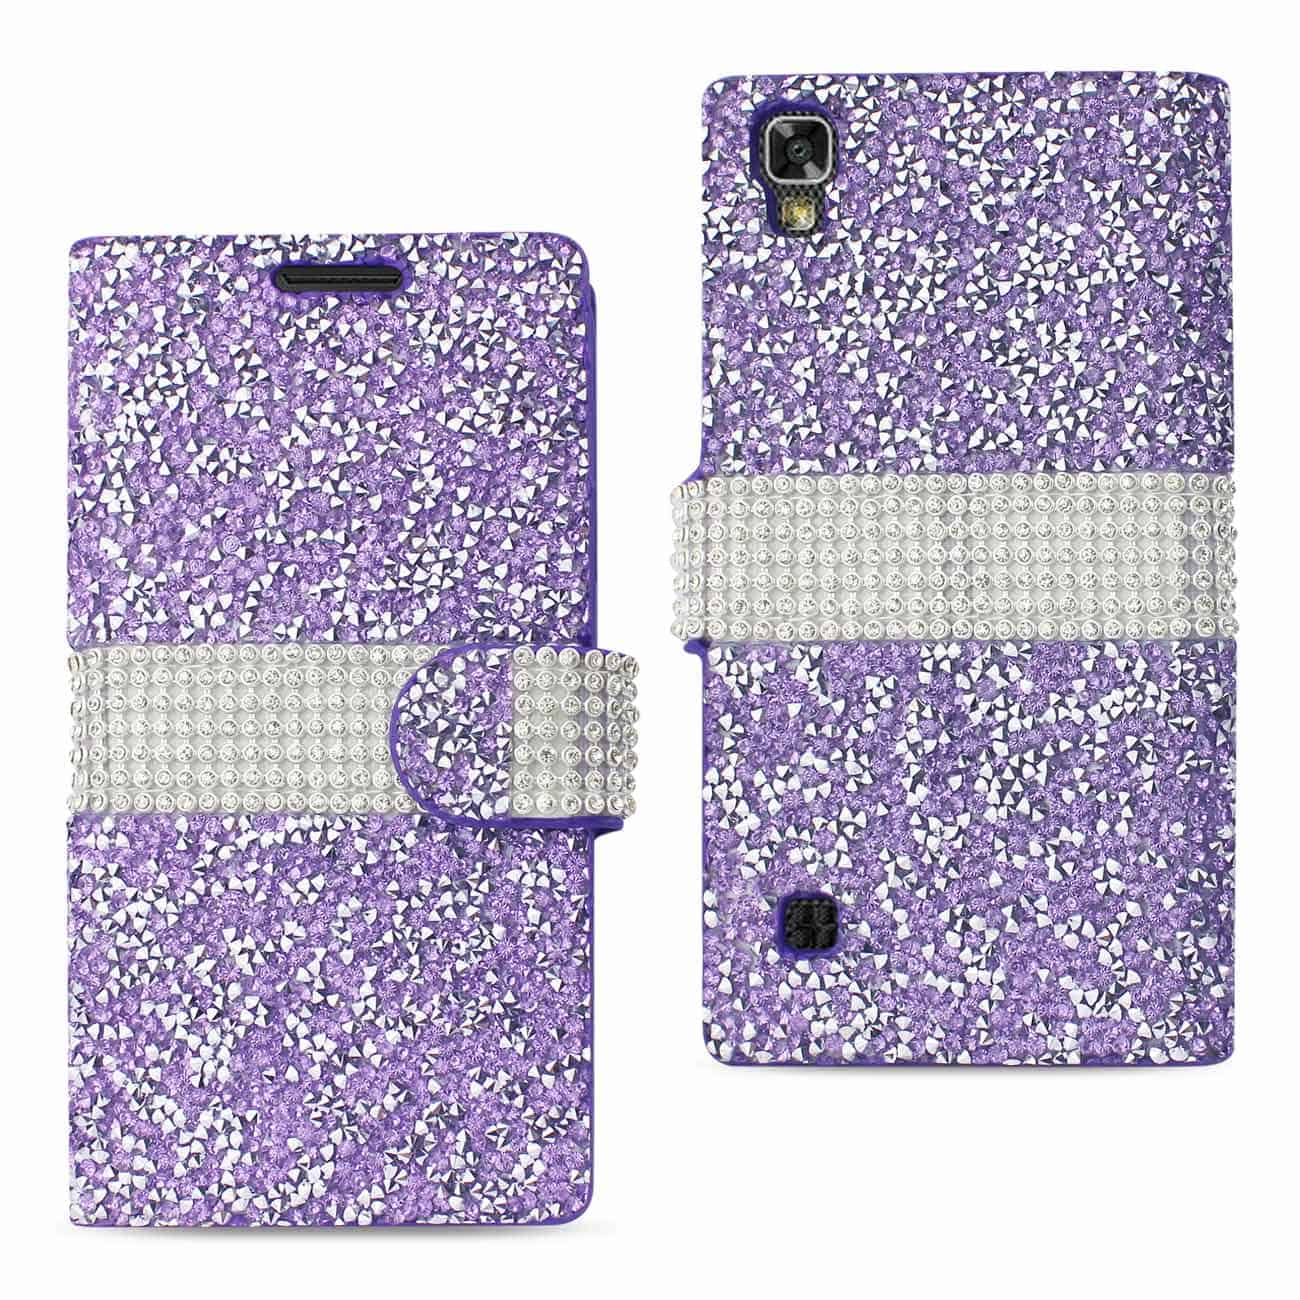 LG X POWER/ K6 DIAMOND RHINESTONE WALLET CASE IN PURPLE